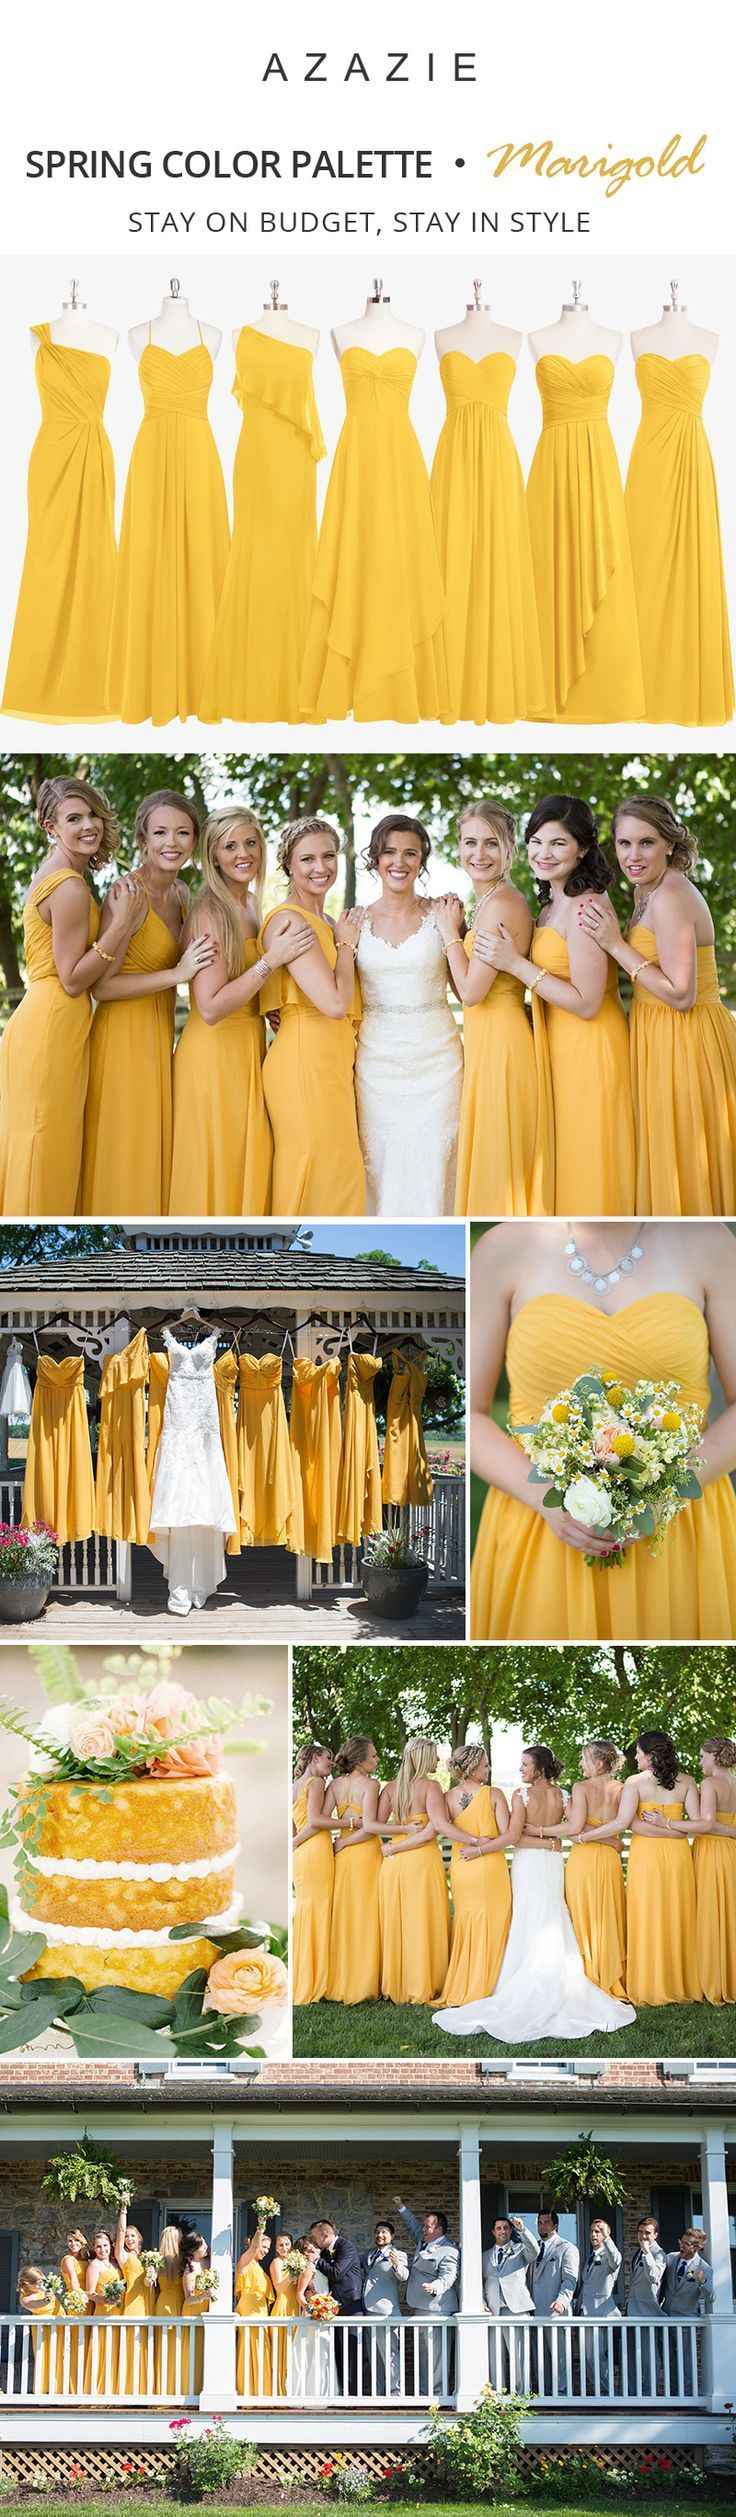 Yellow dress to wedding  Yellow Dresses What to Wear With Yellow Dress  Dream wedding